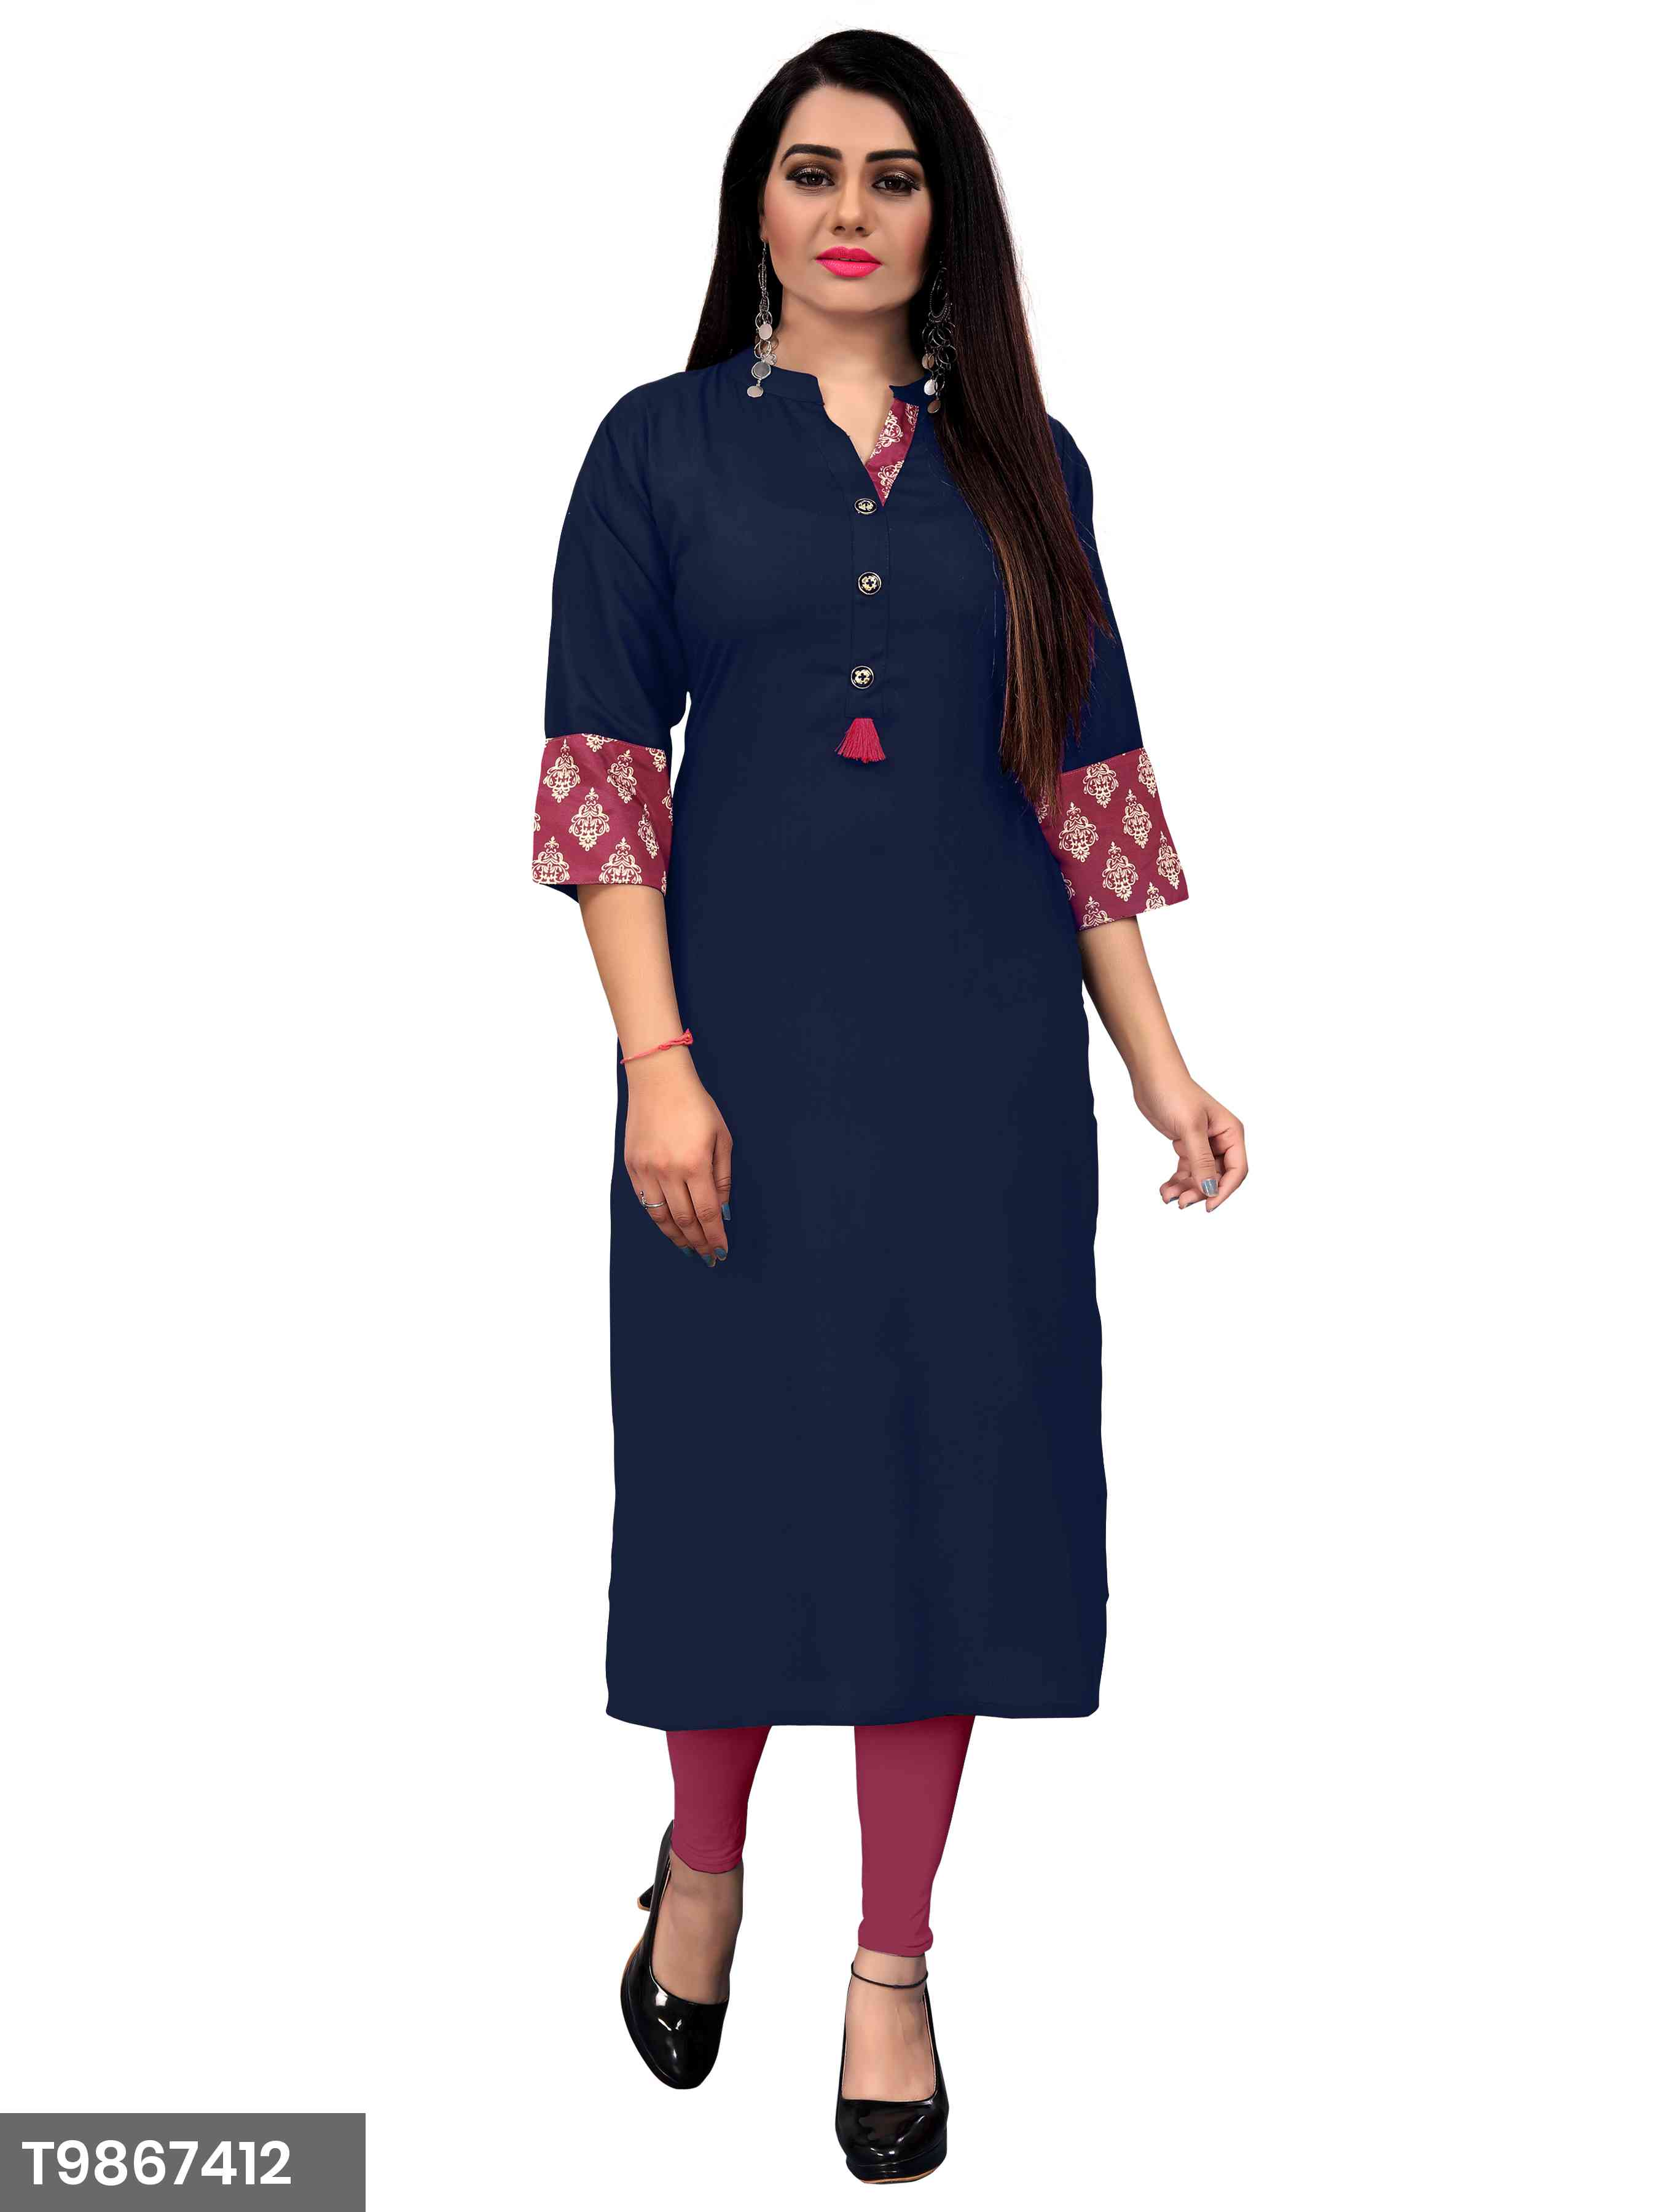 New Plain Green Color Rayon Kurti For Women's